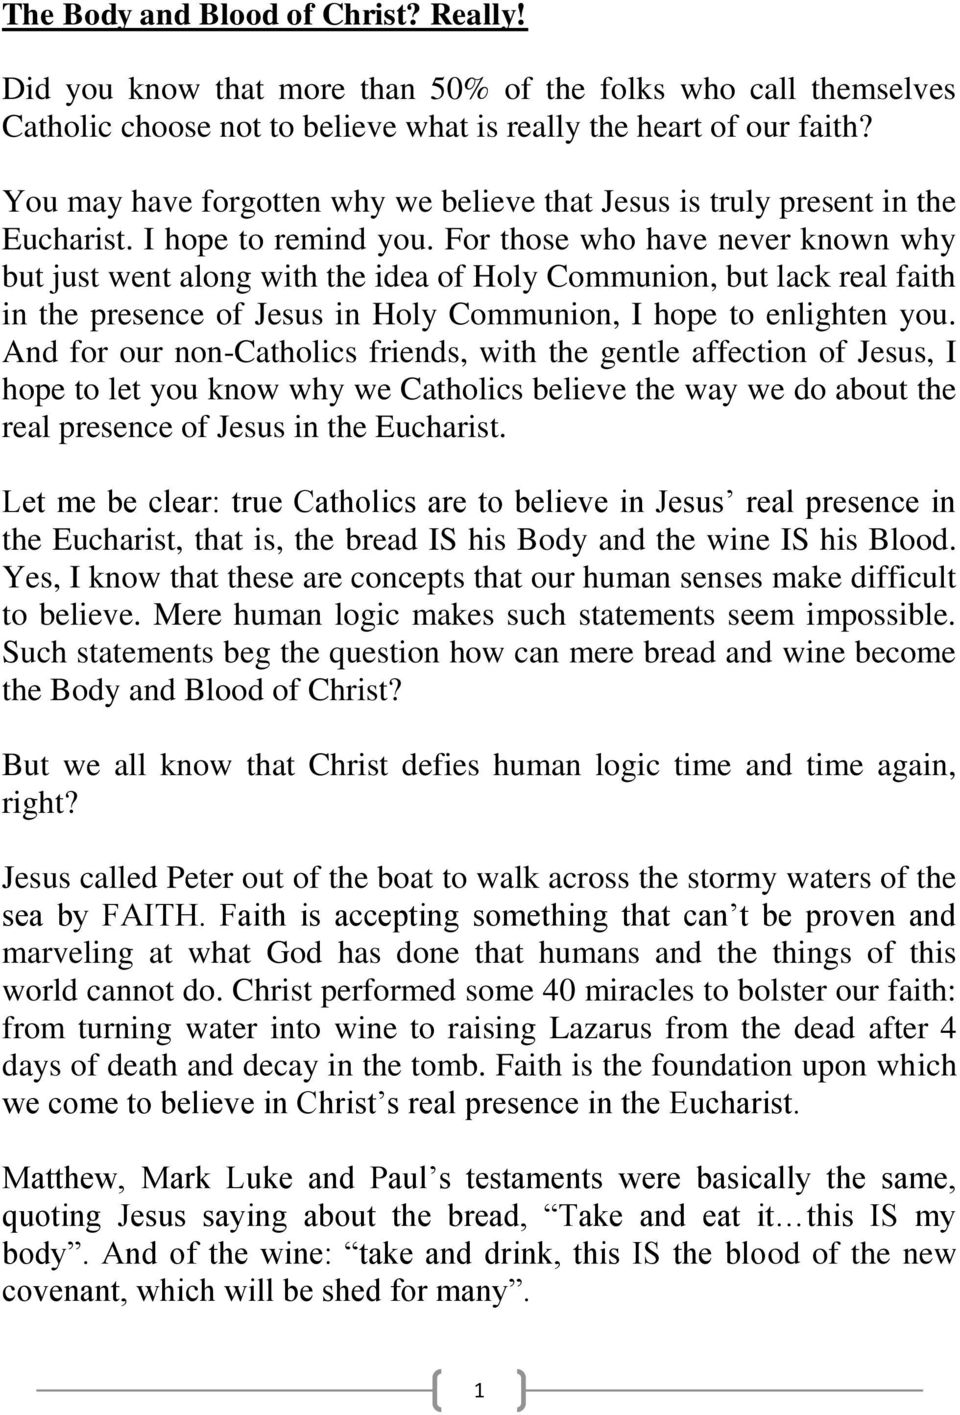 For those who have never known why but just went along with the idea of Holy Communion, but lack real faith in the presence of Jesus in Holy Communion, I hope to enlighten you.